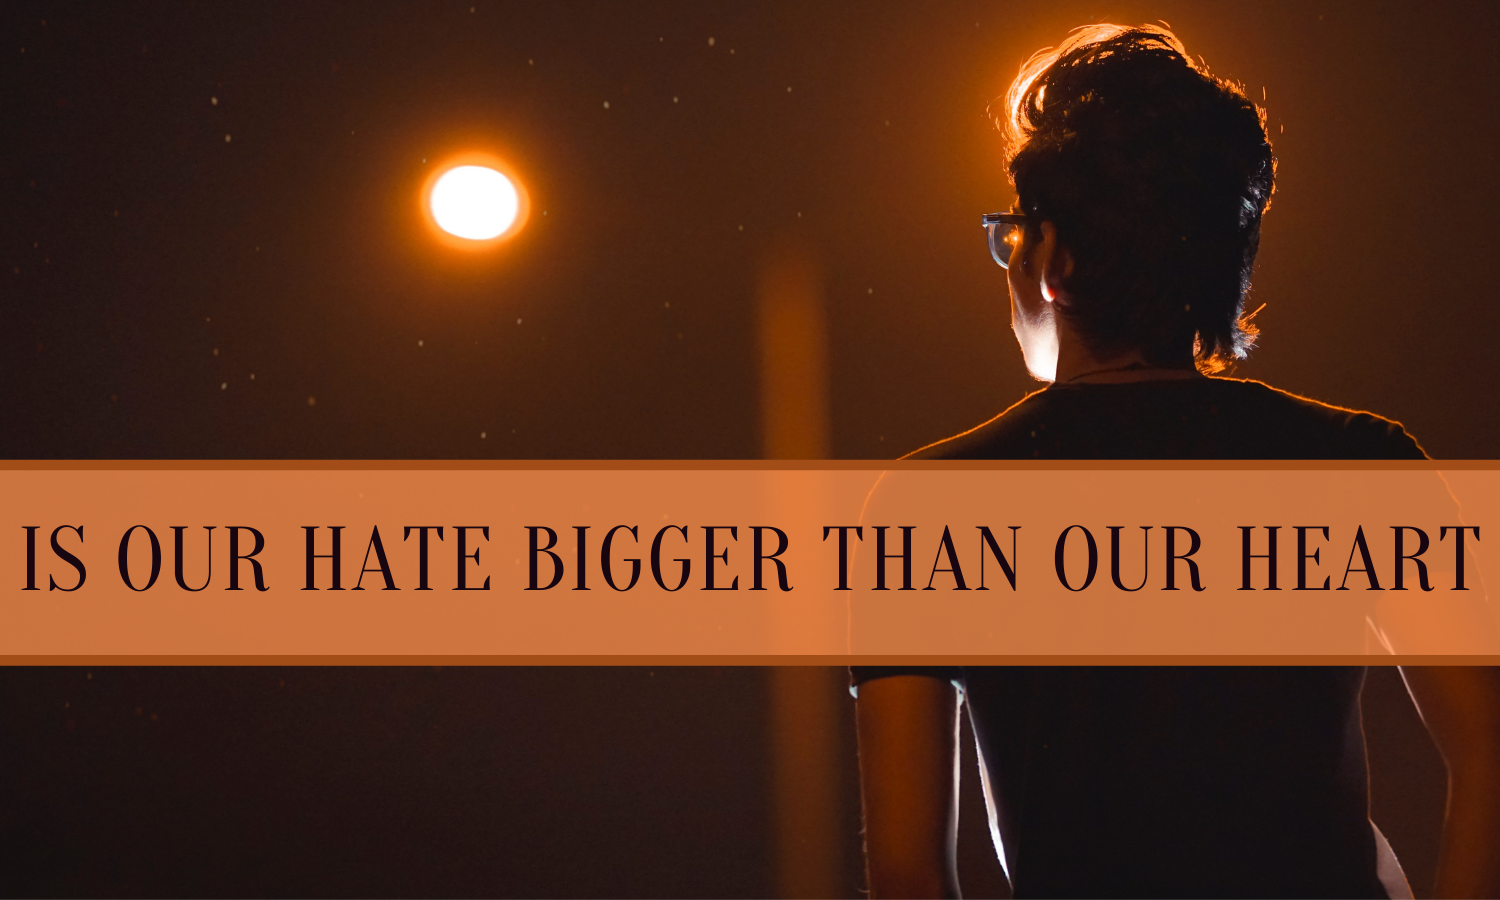 Is Our Hate Bigger Than Our Heart